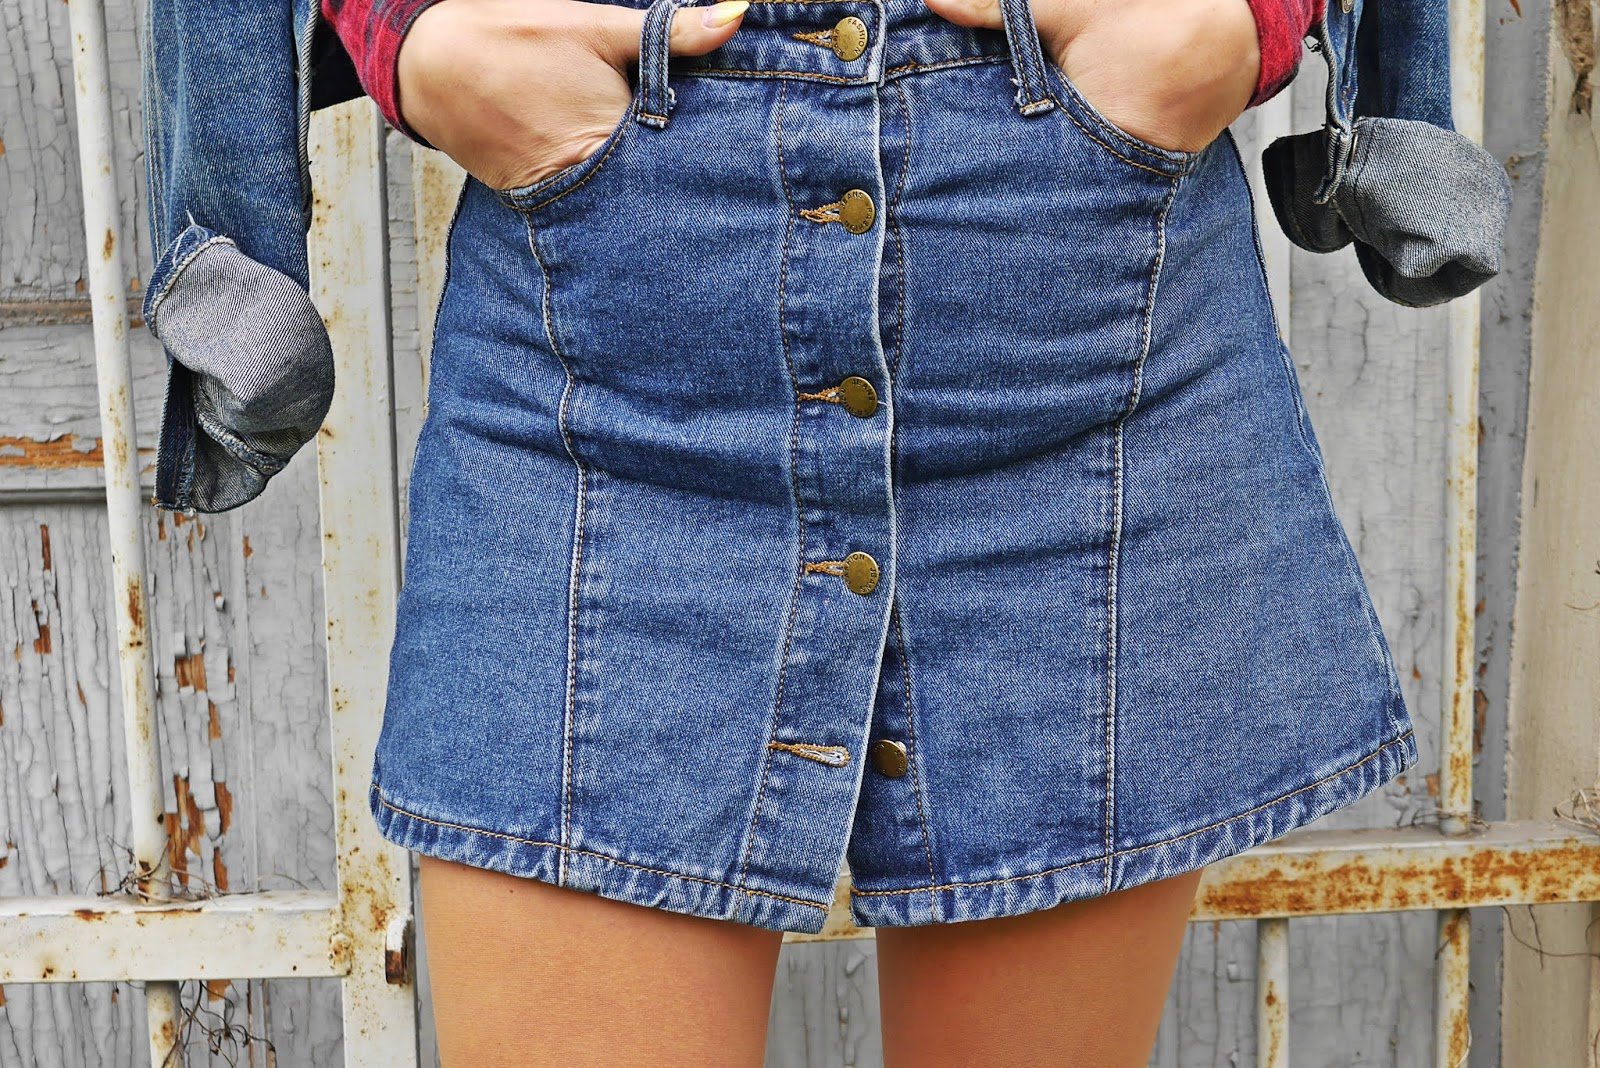 pin pearl denim skirt crop top socks shoes outfit look fashion blogger karyn